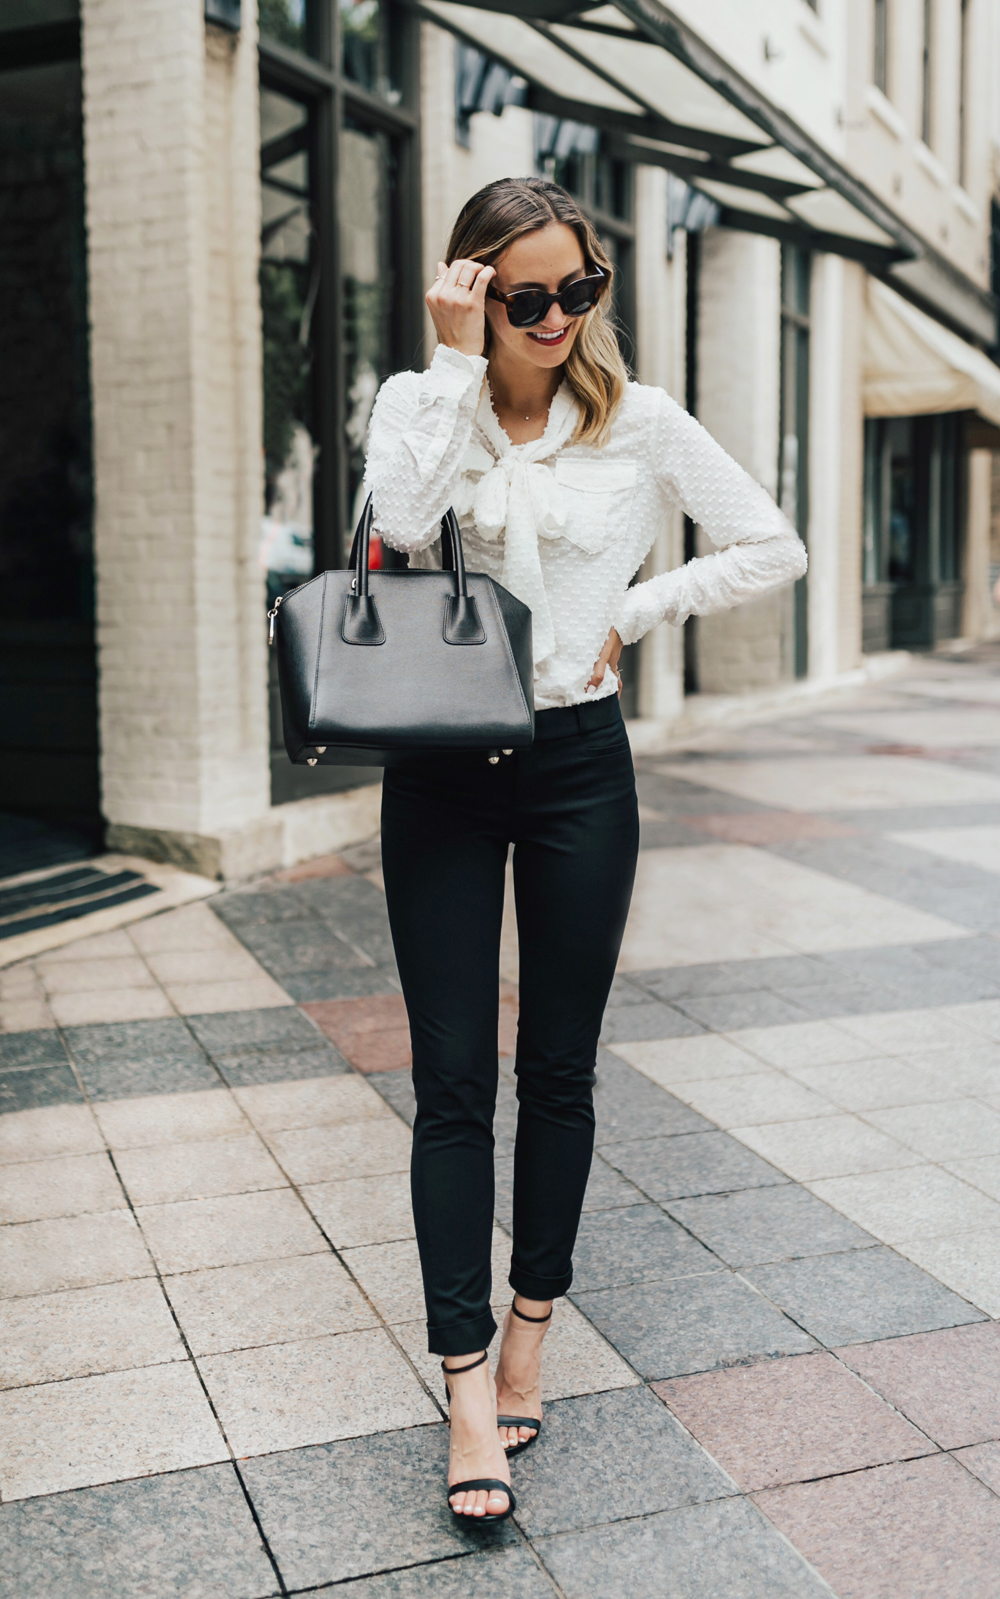 d08f726a48 Black Pants From Work To Play - LivvyLand | Austin Fashion and Style ...